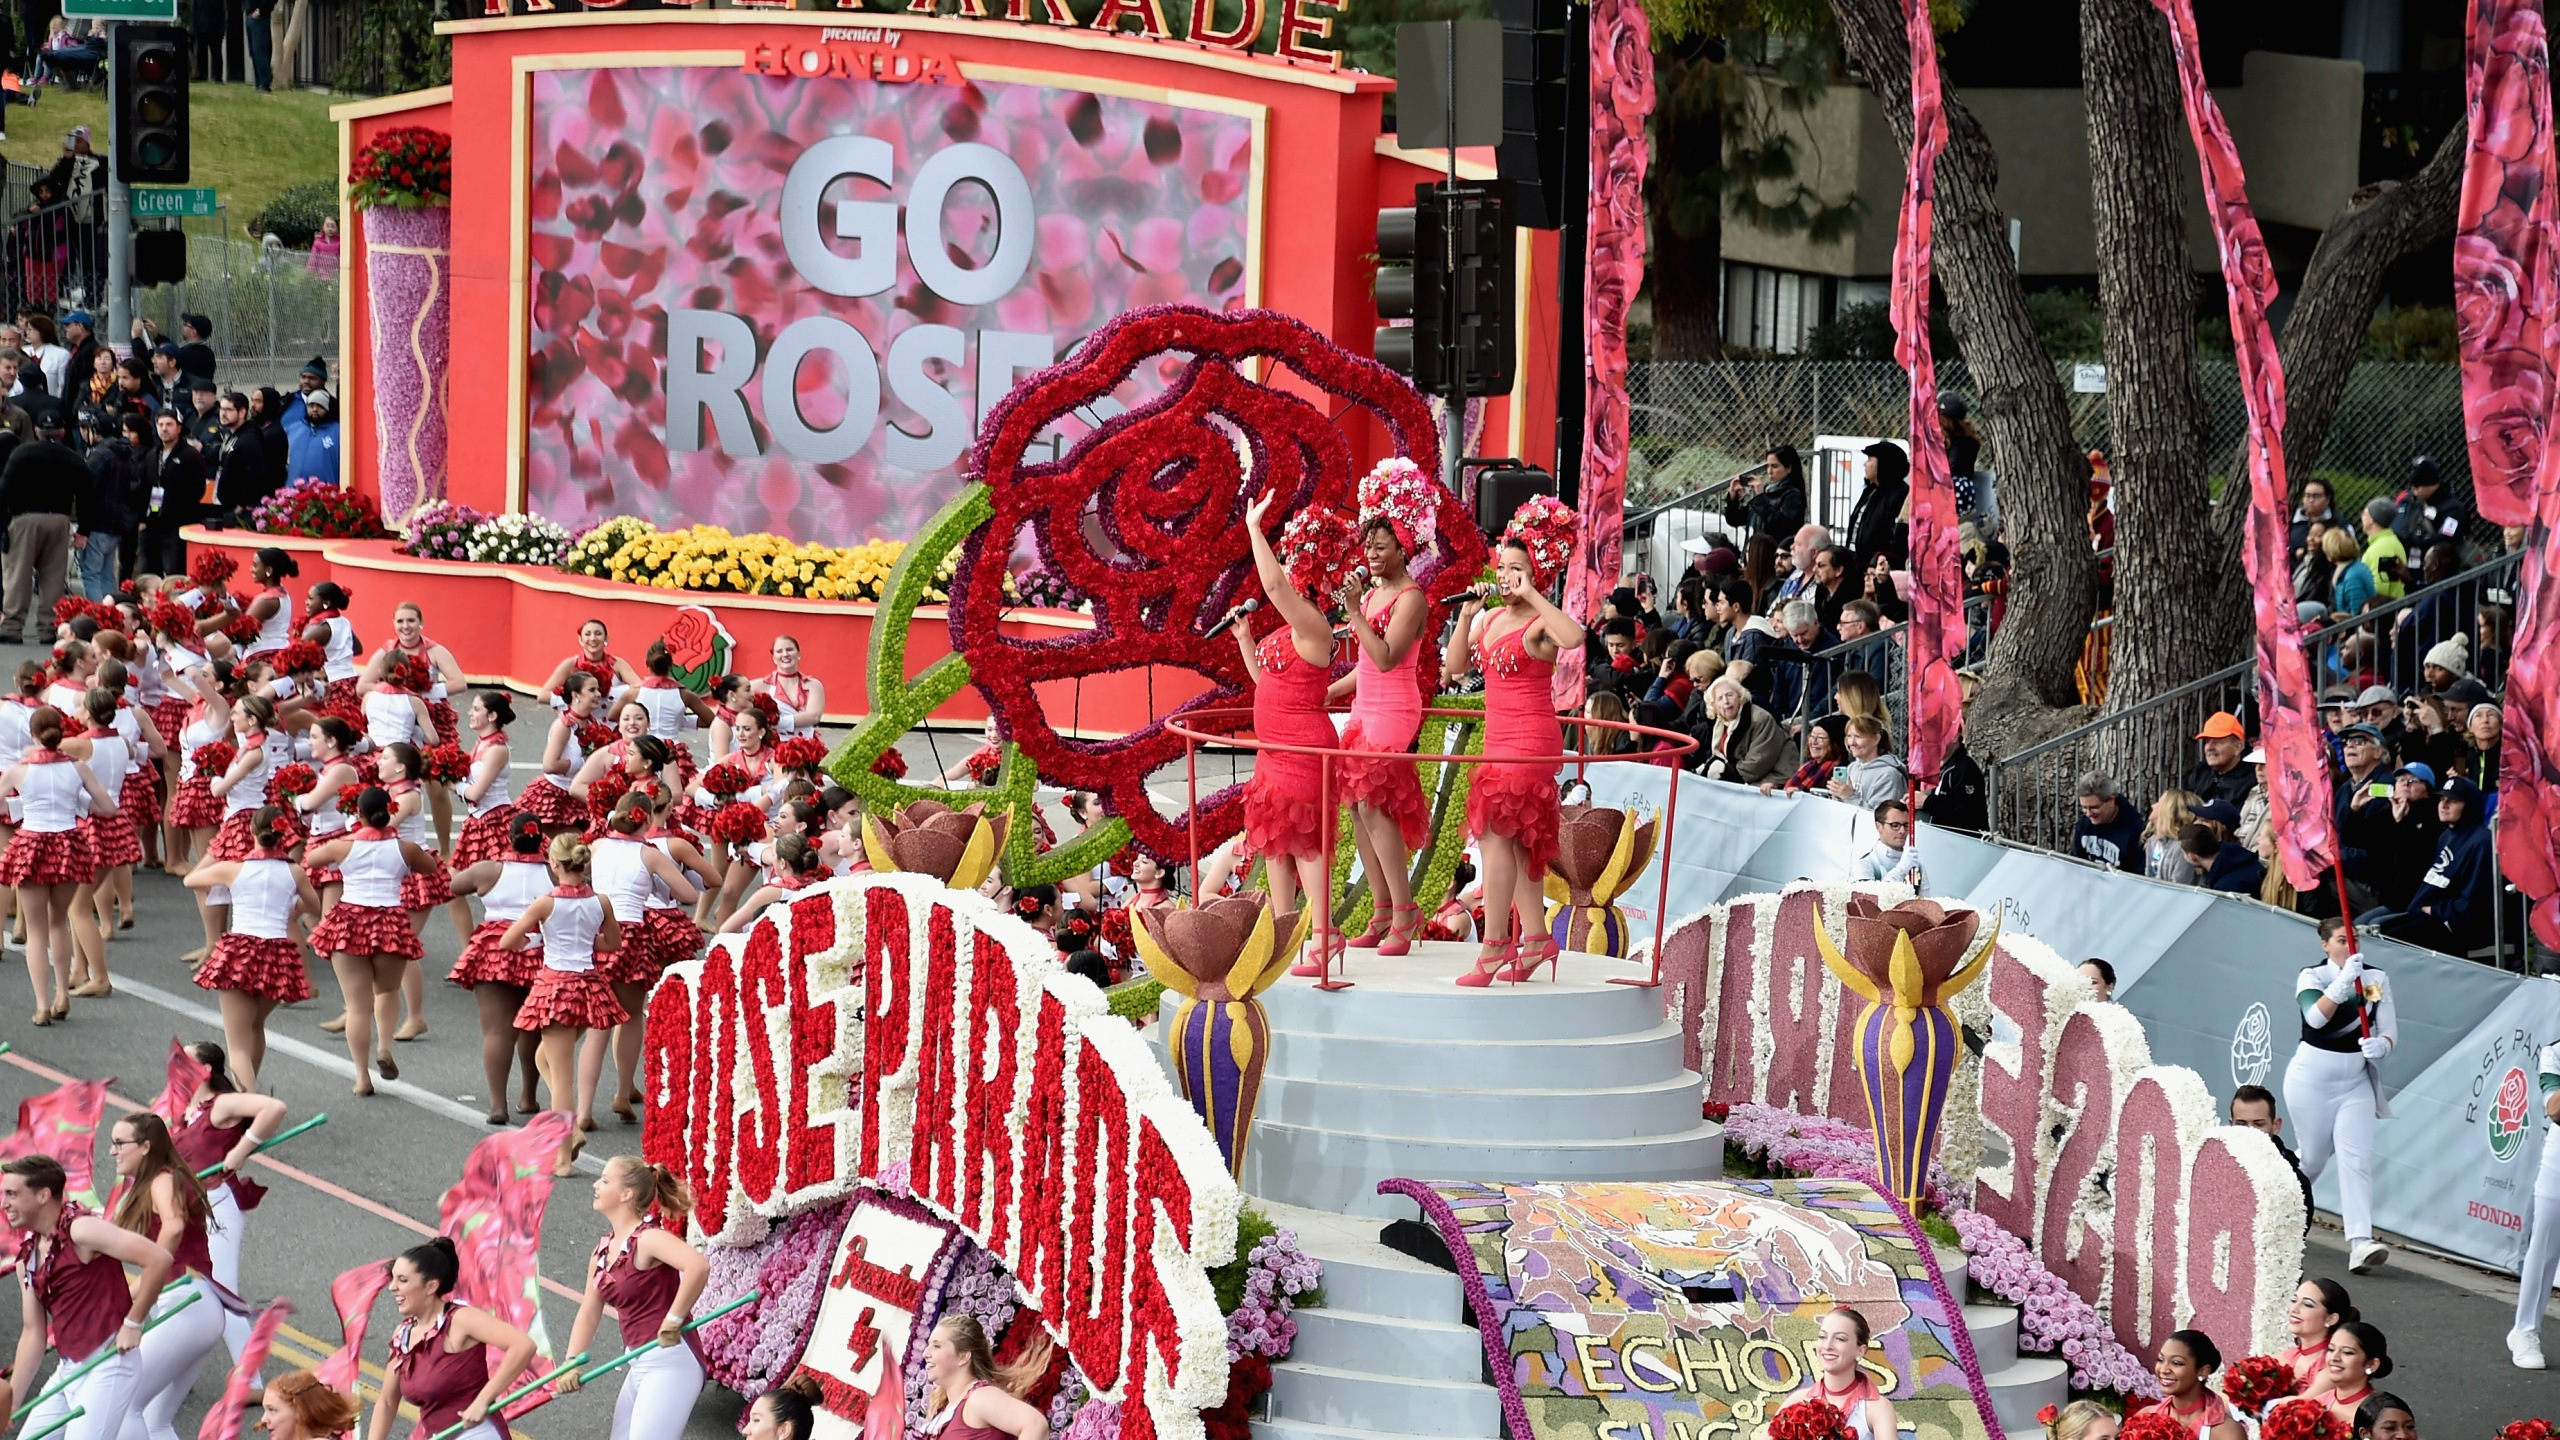 Performers open the 128th Tournament of Roses Parade Presented by Honda on Jan. 2, 2017, in Pasadena, California. (Alberto E. Rodriguez/Getty Images)